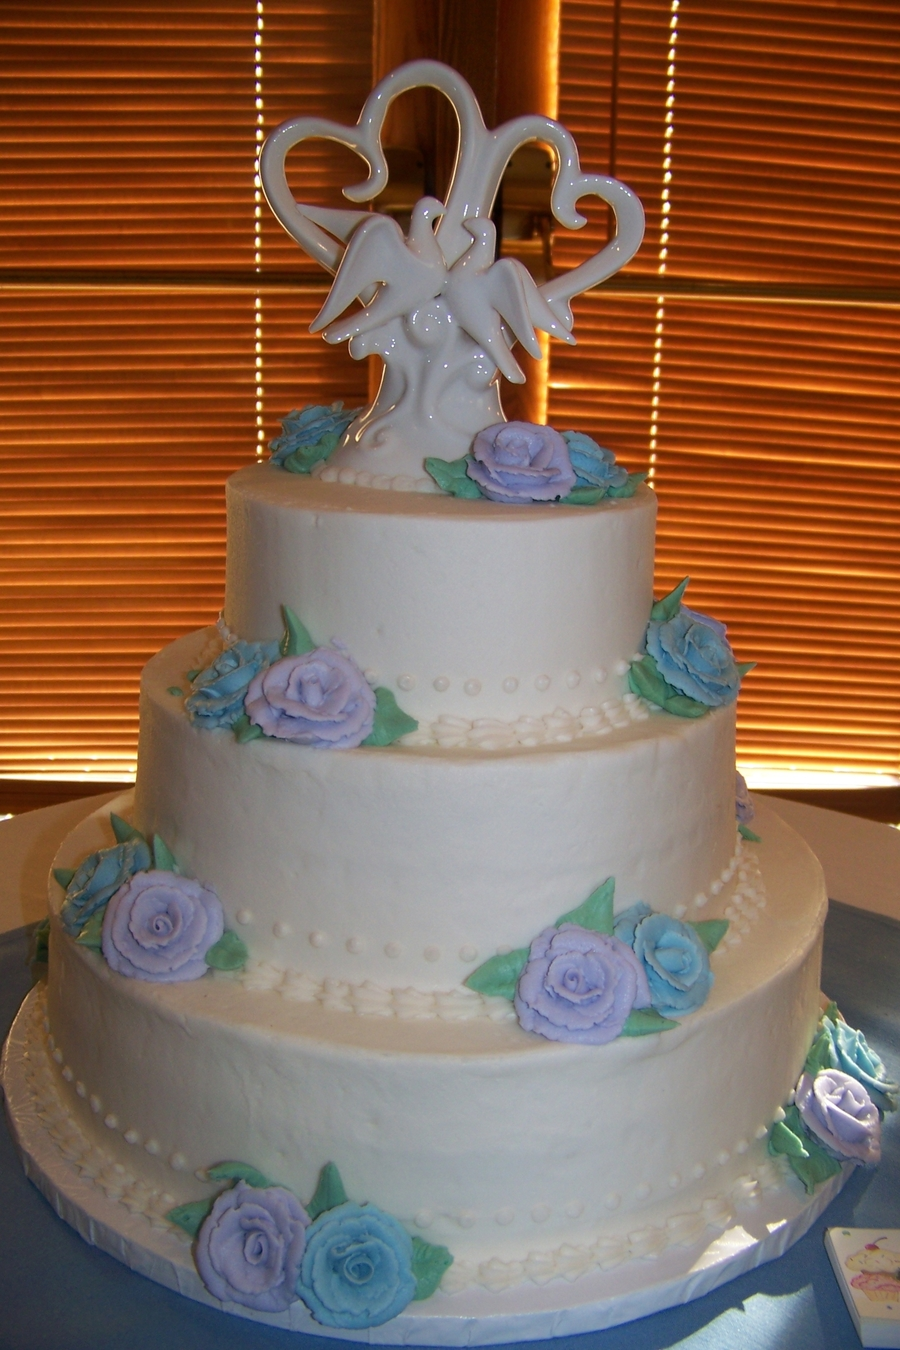 Buttercream Rose Wedding Cake  on Cake Central